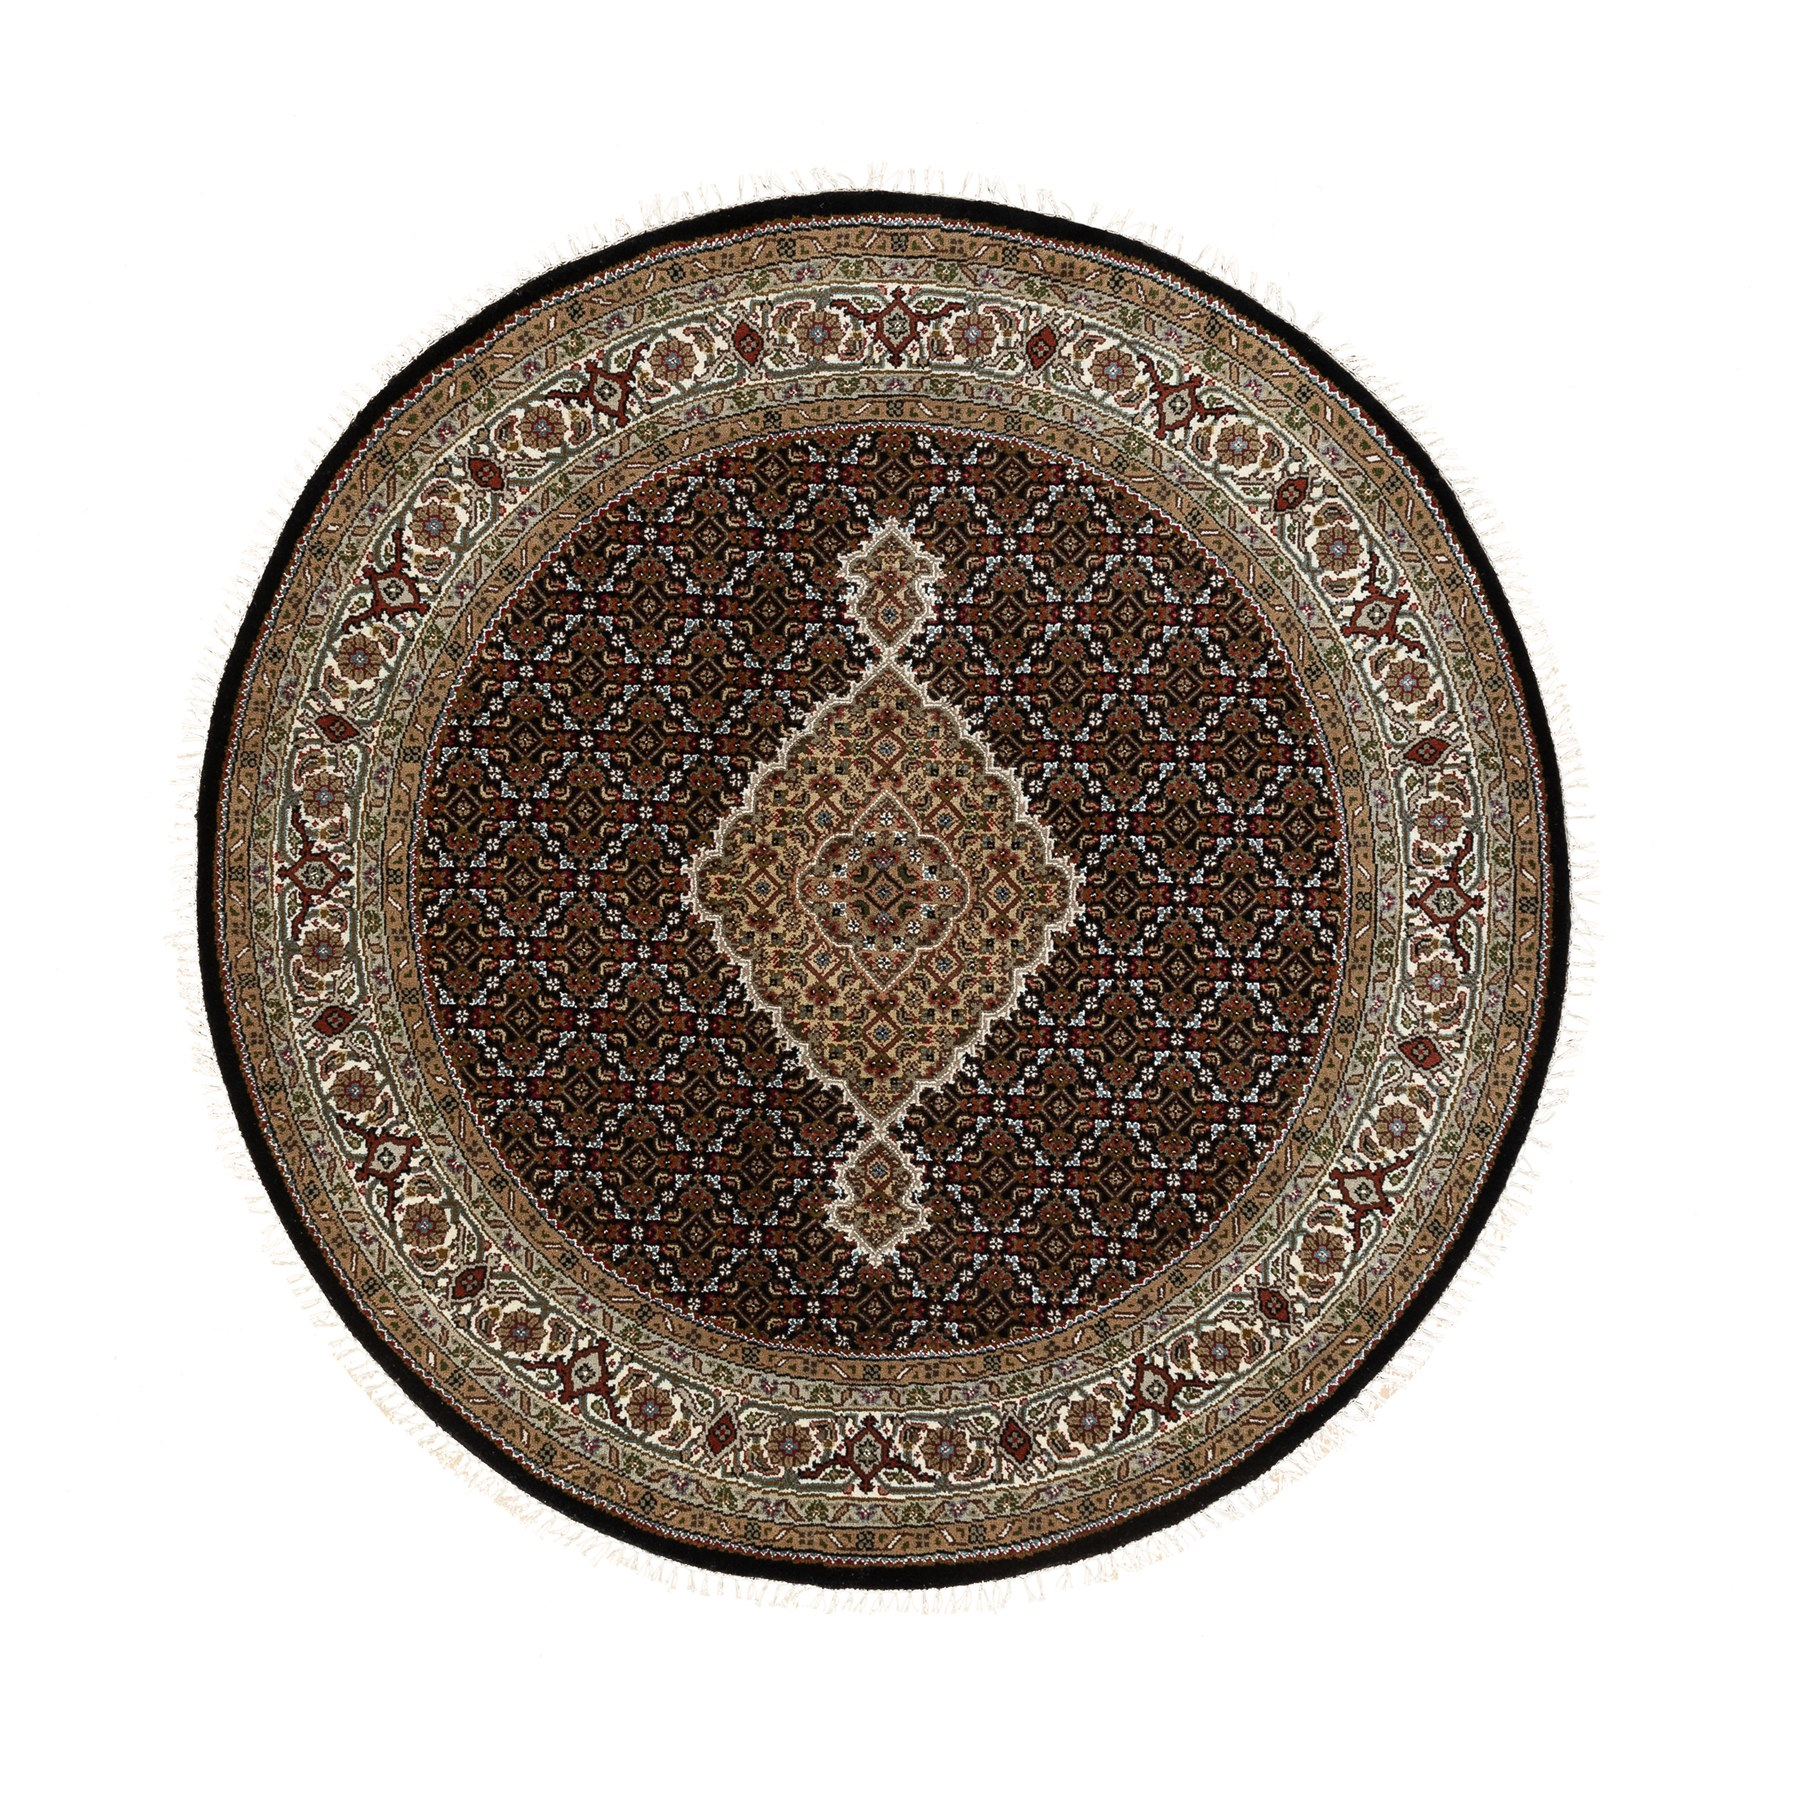 Pirniakan Collection Hand Knotted Black Rug No: 1117378